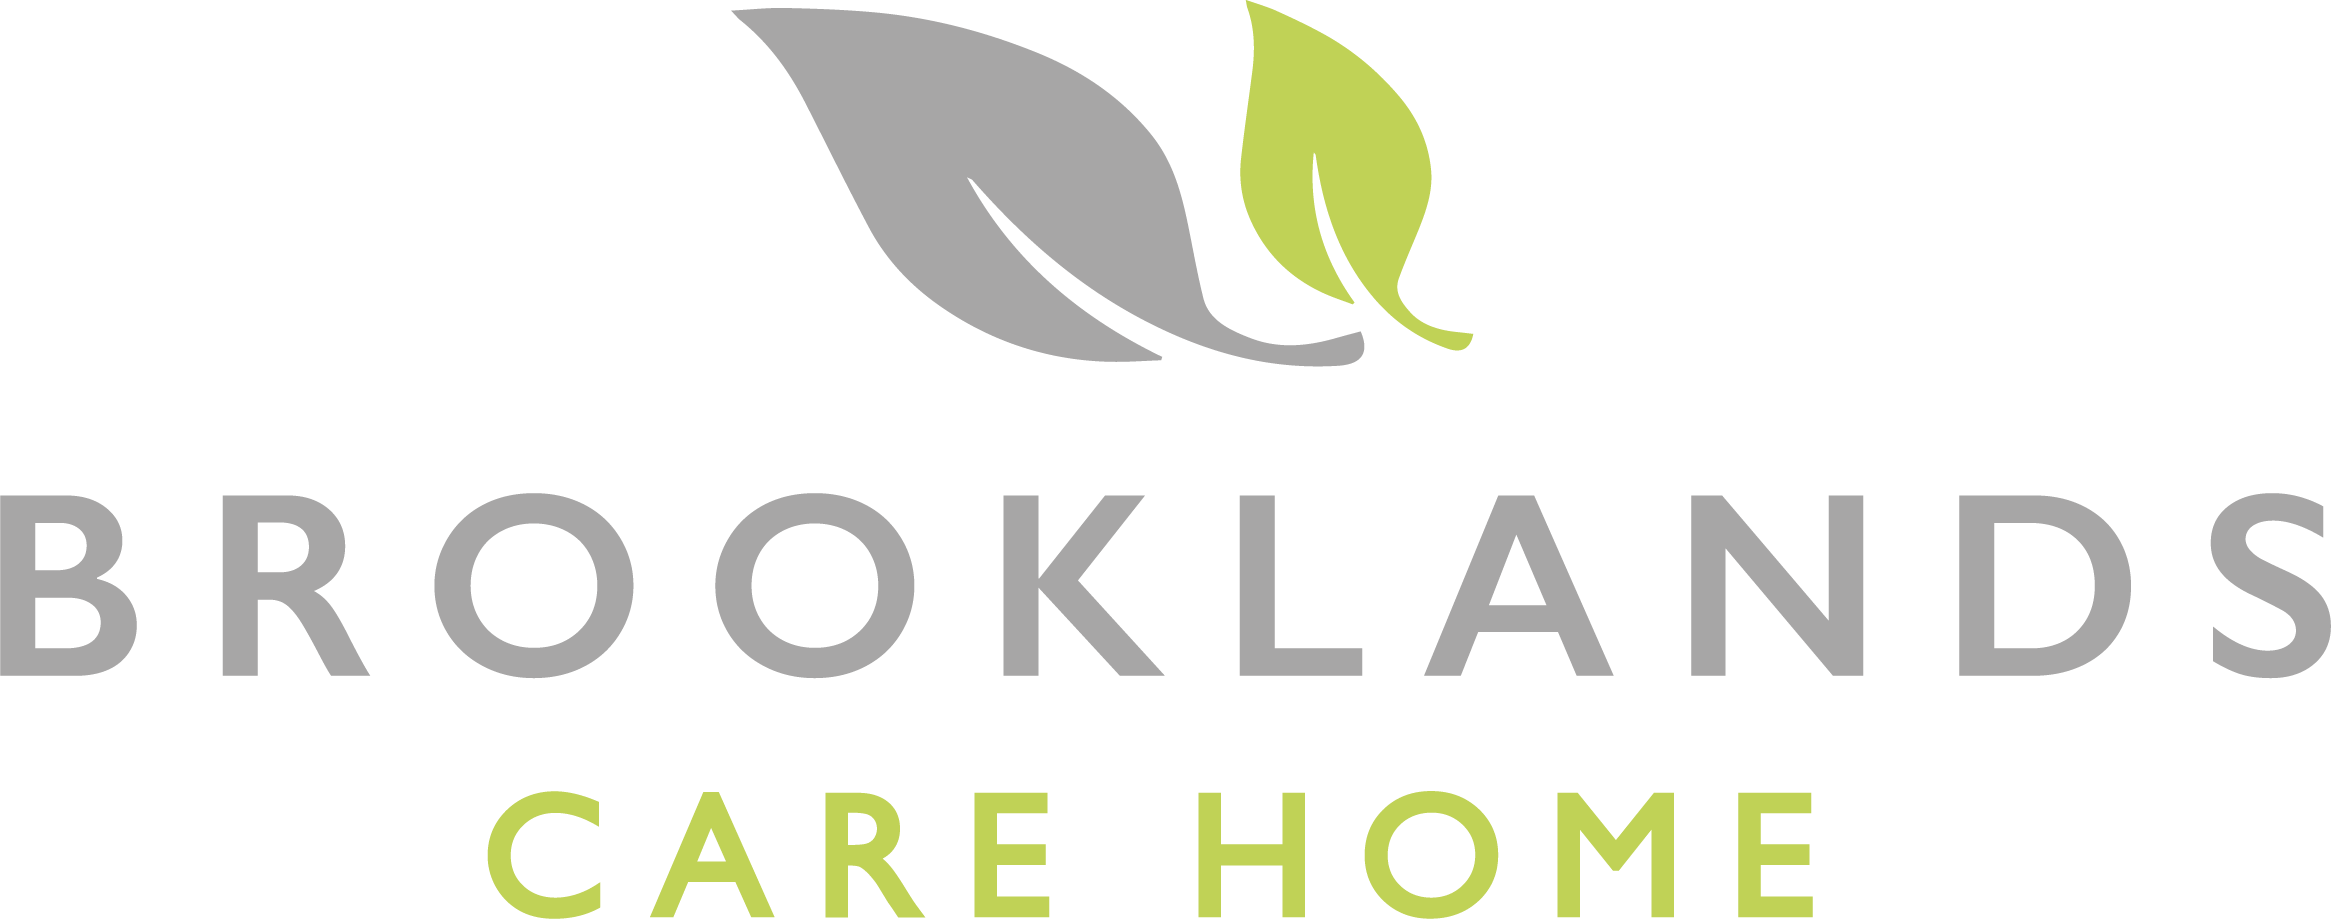 Brooklands Care Home